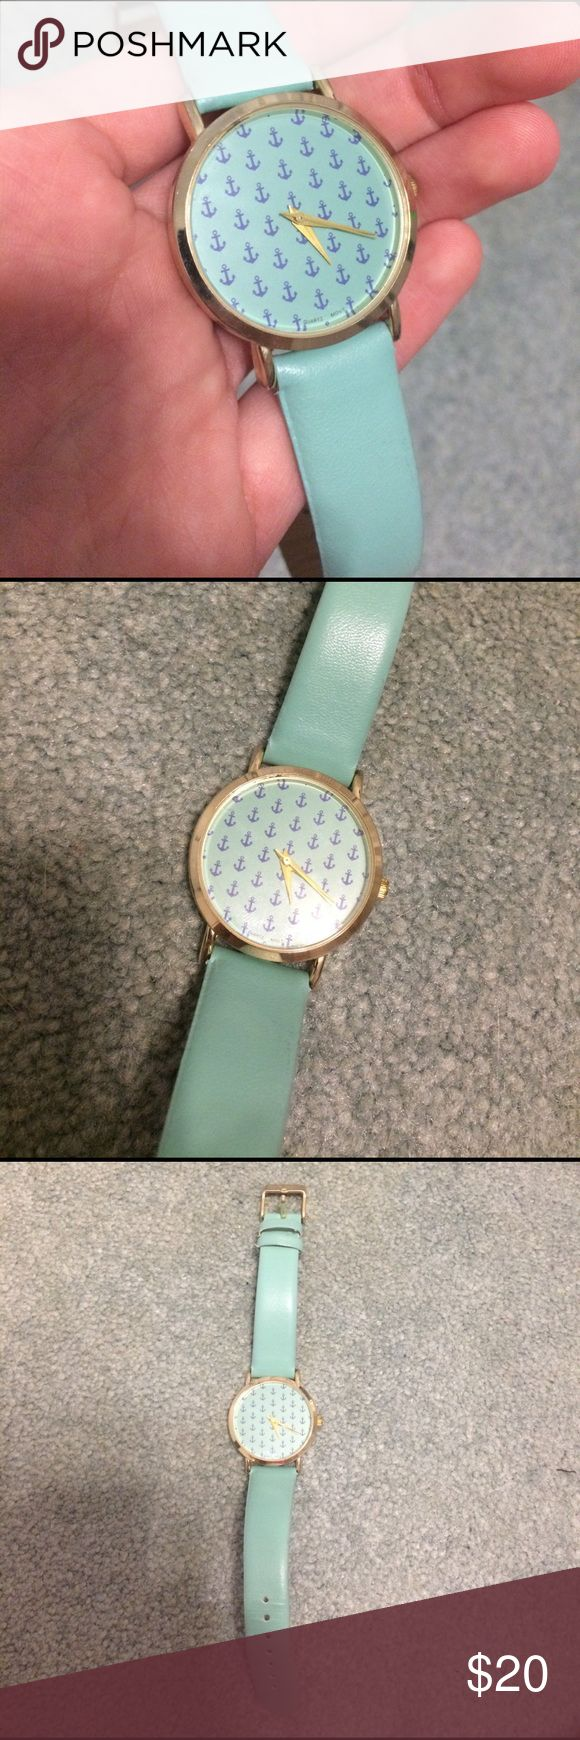 Anchor Watch Cute Anchor watch! Fake leather material and is for fashion purposes only. Nothing industrially made or anything. Accessories Watches